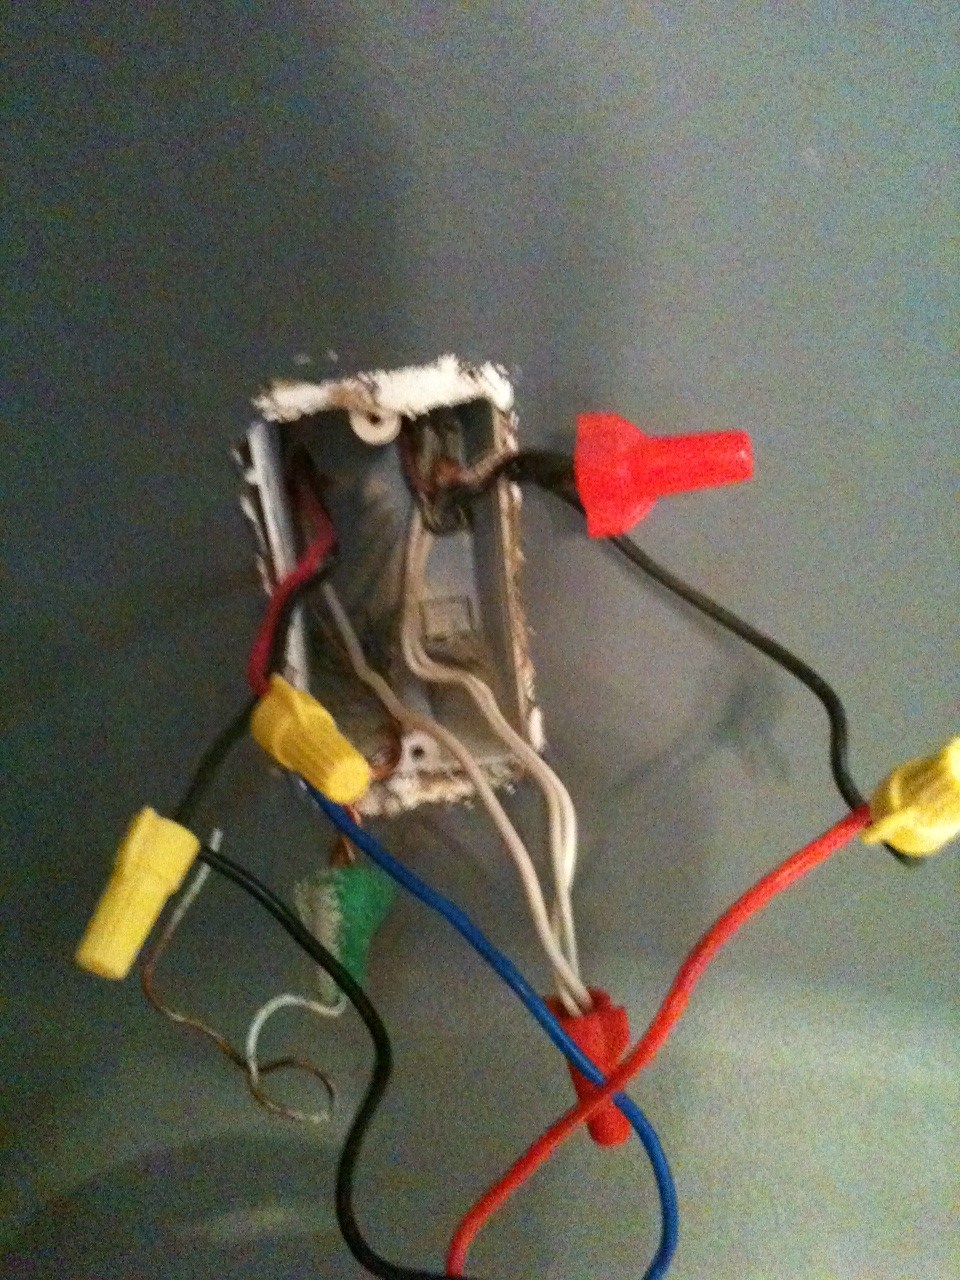 hunter fan wiring diagram switch two phase im trying to wire a 3 speed and light dimmer it